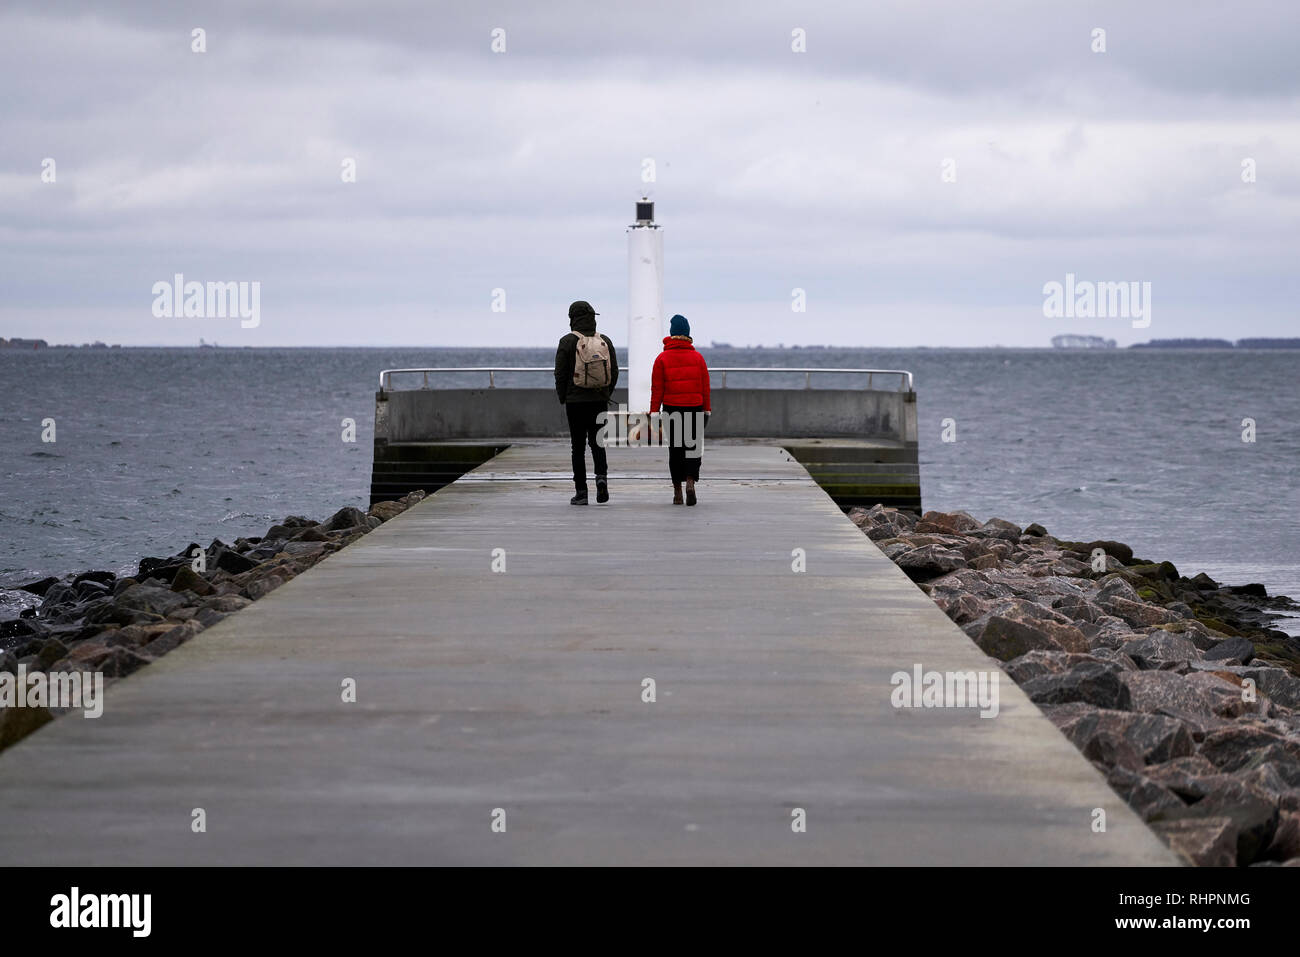 Couple standing on a pier looking out to sea, Copenhagen, Denmark, January 2019 - Stock Image